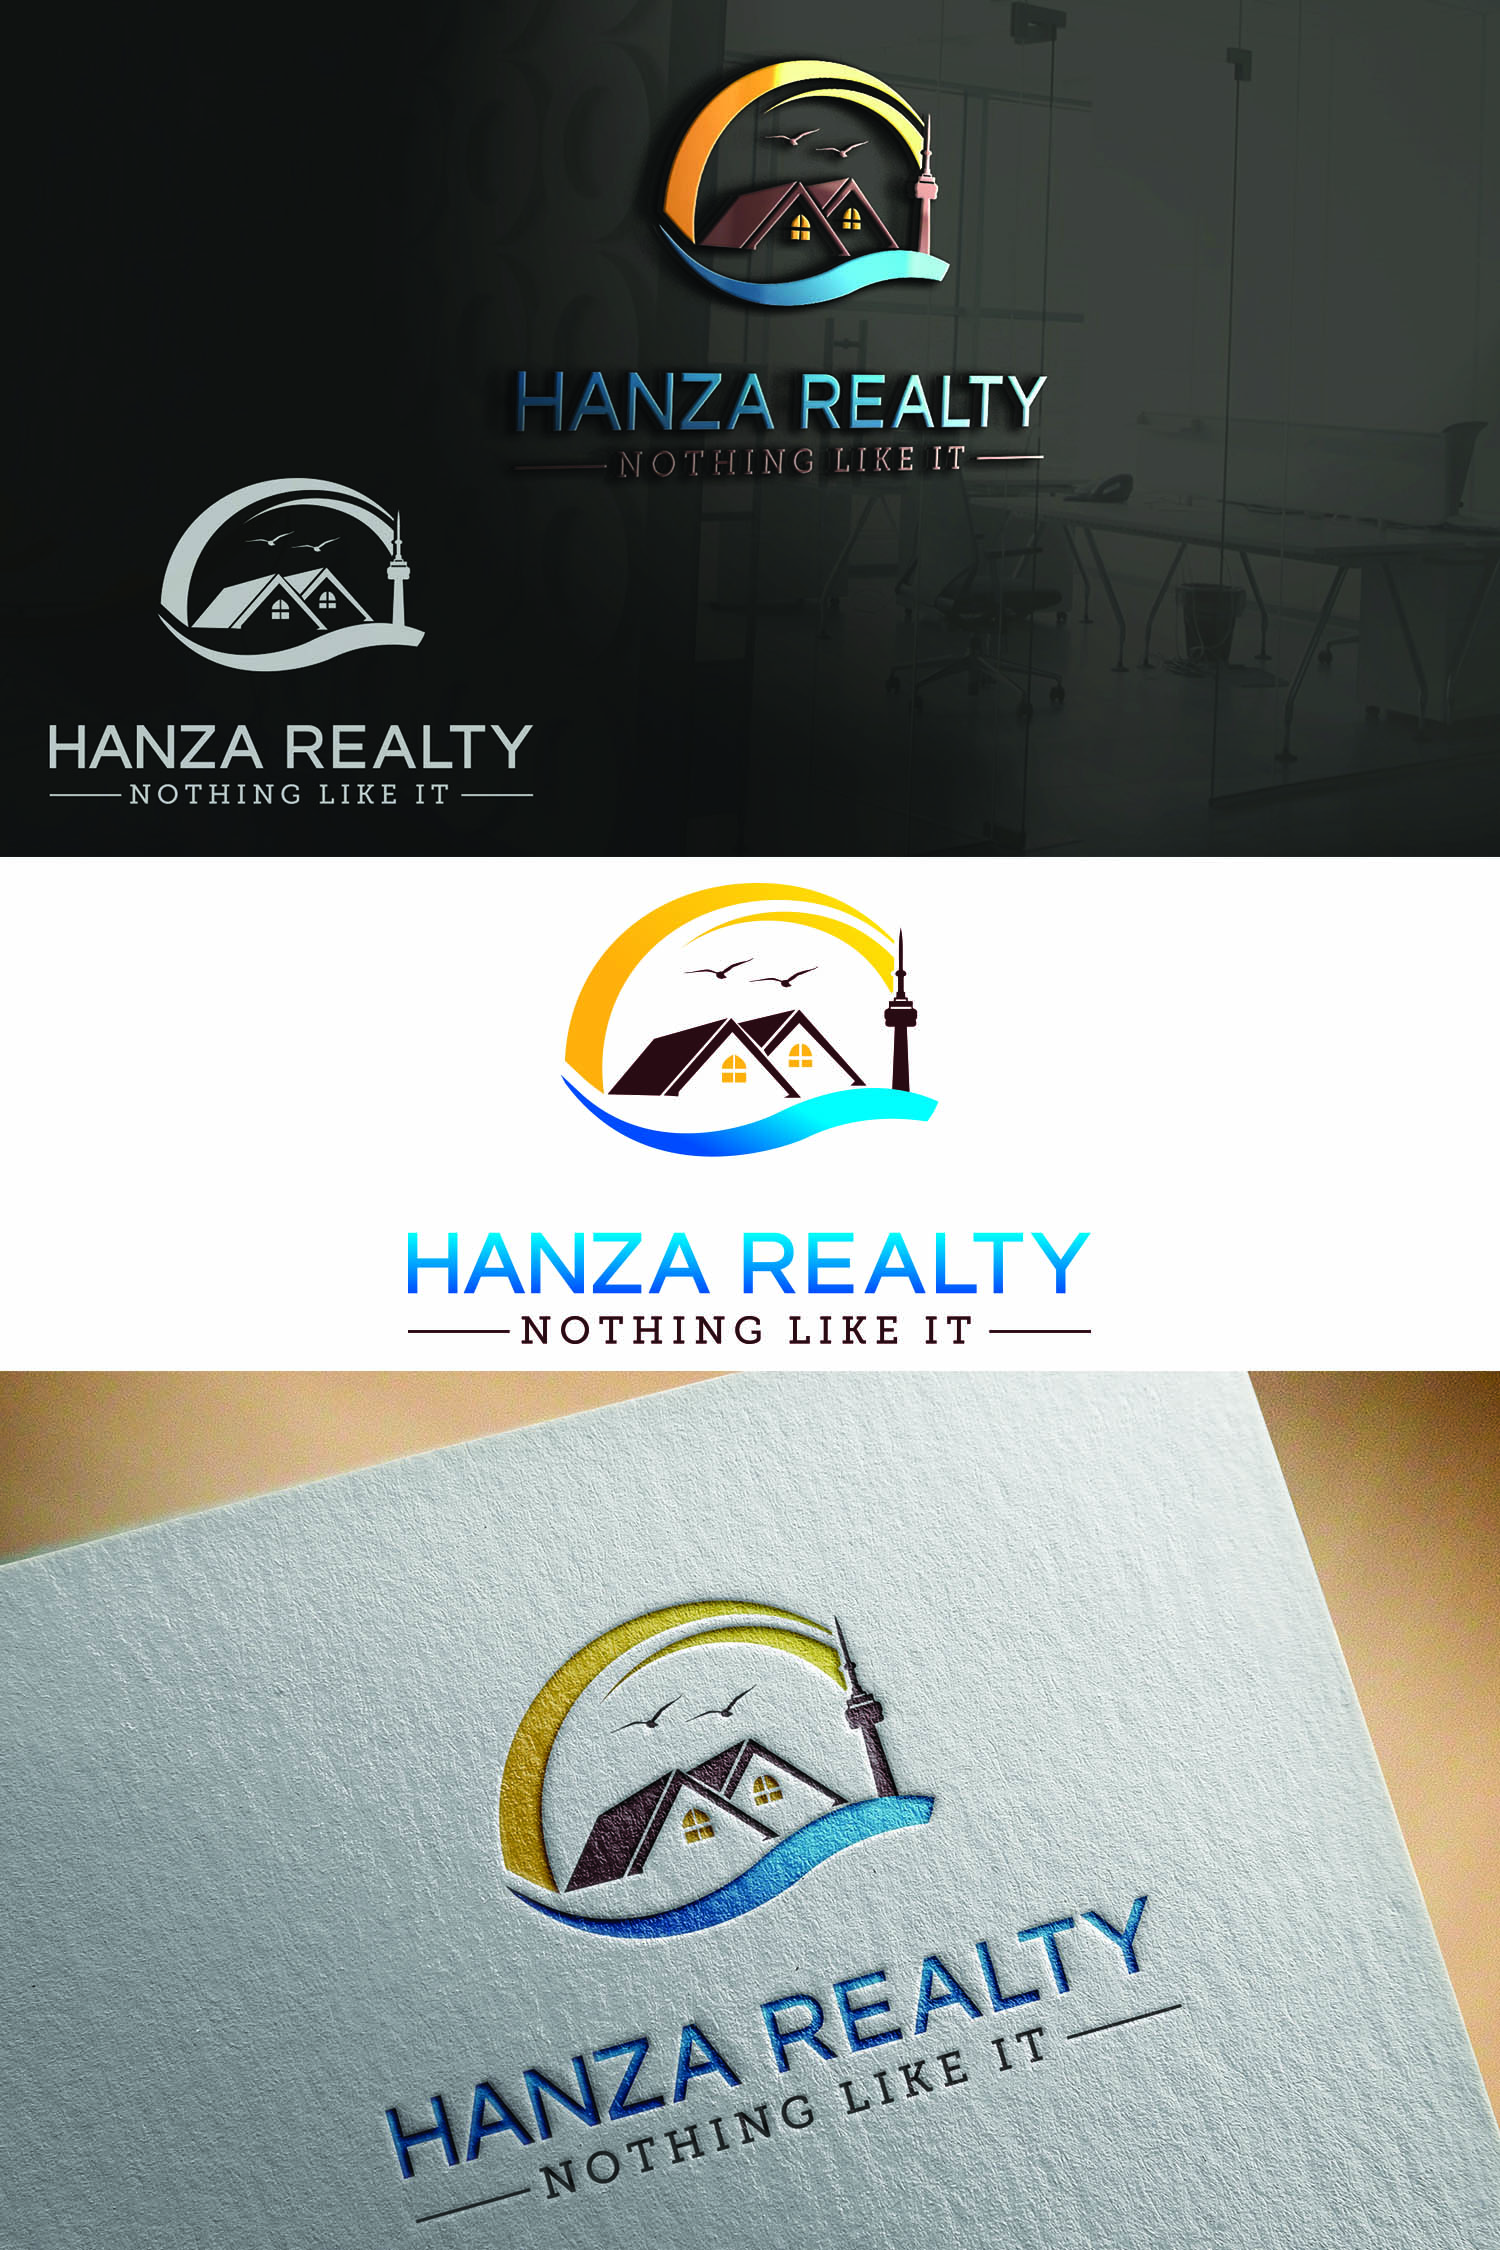 Logo Design by Umair ahmed Iqbal - Entry No. 146 in the Logo Design Contest Logo Design for Hanza Realty.